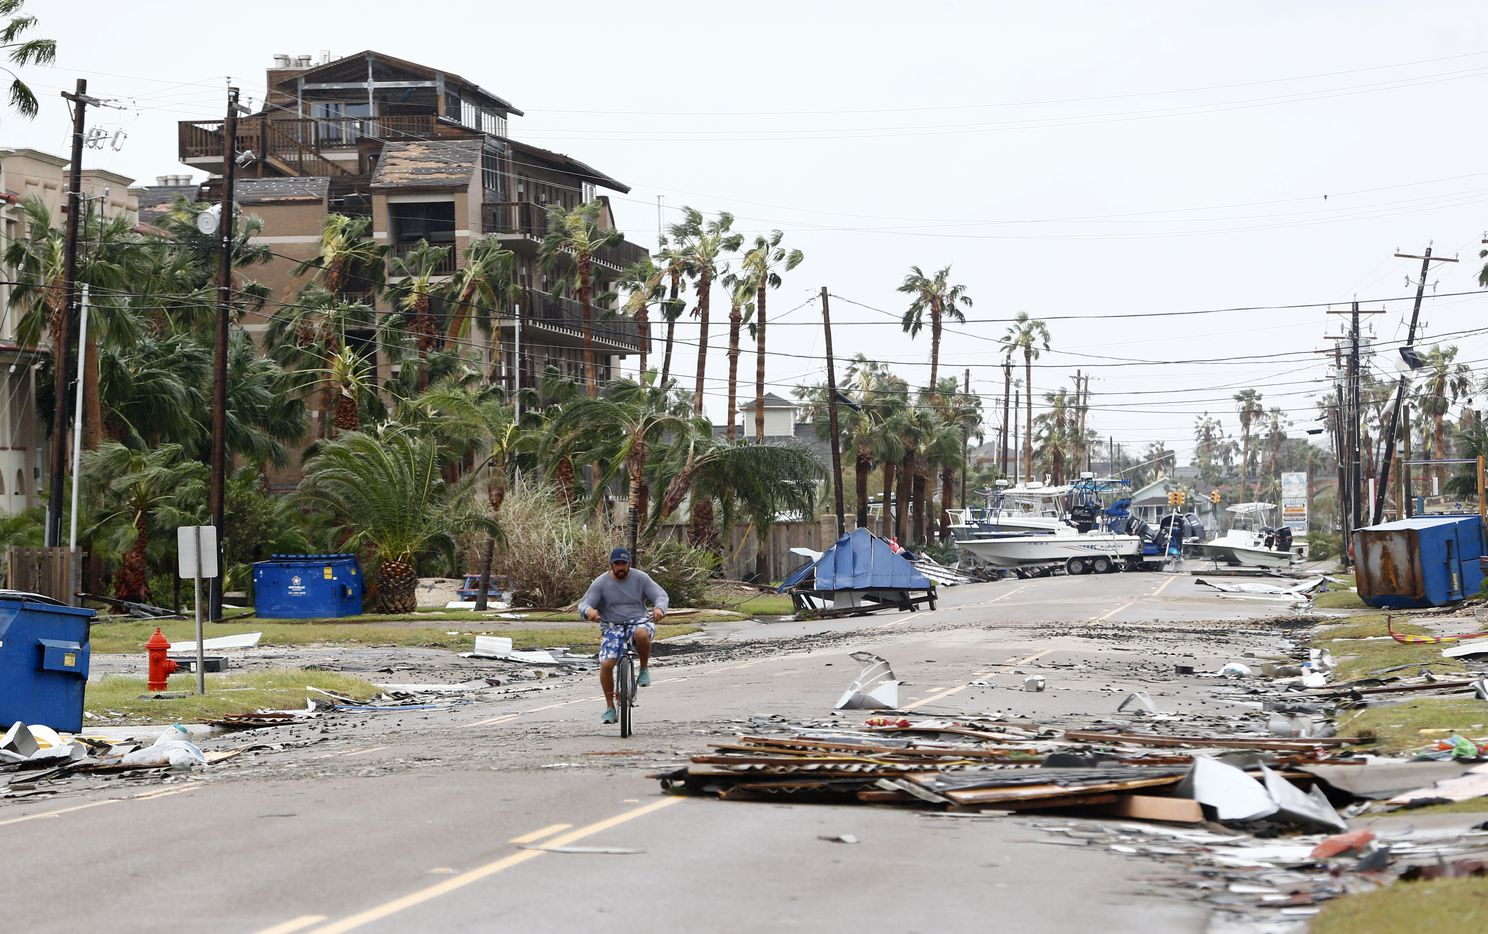 Mike Andrews rides his bike down the street after Hurricane Harvey hit Port Aransas, Texas on Aug. 26, 2017.